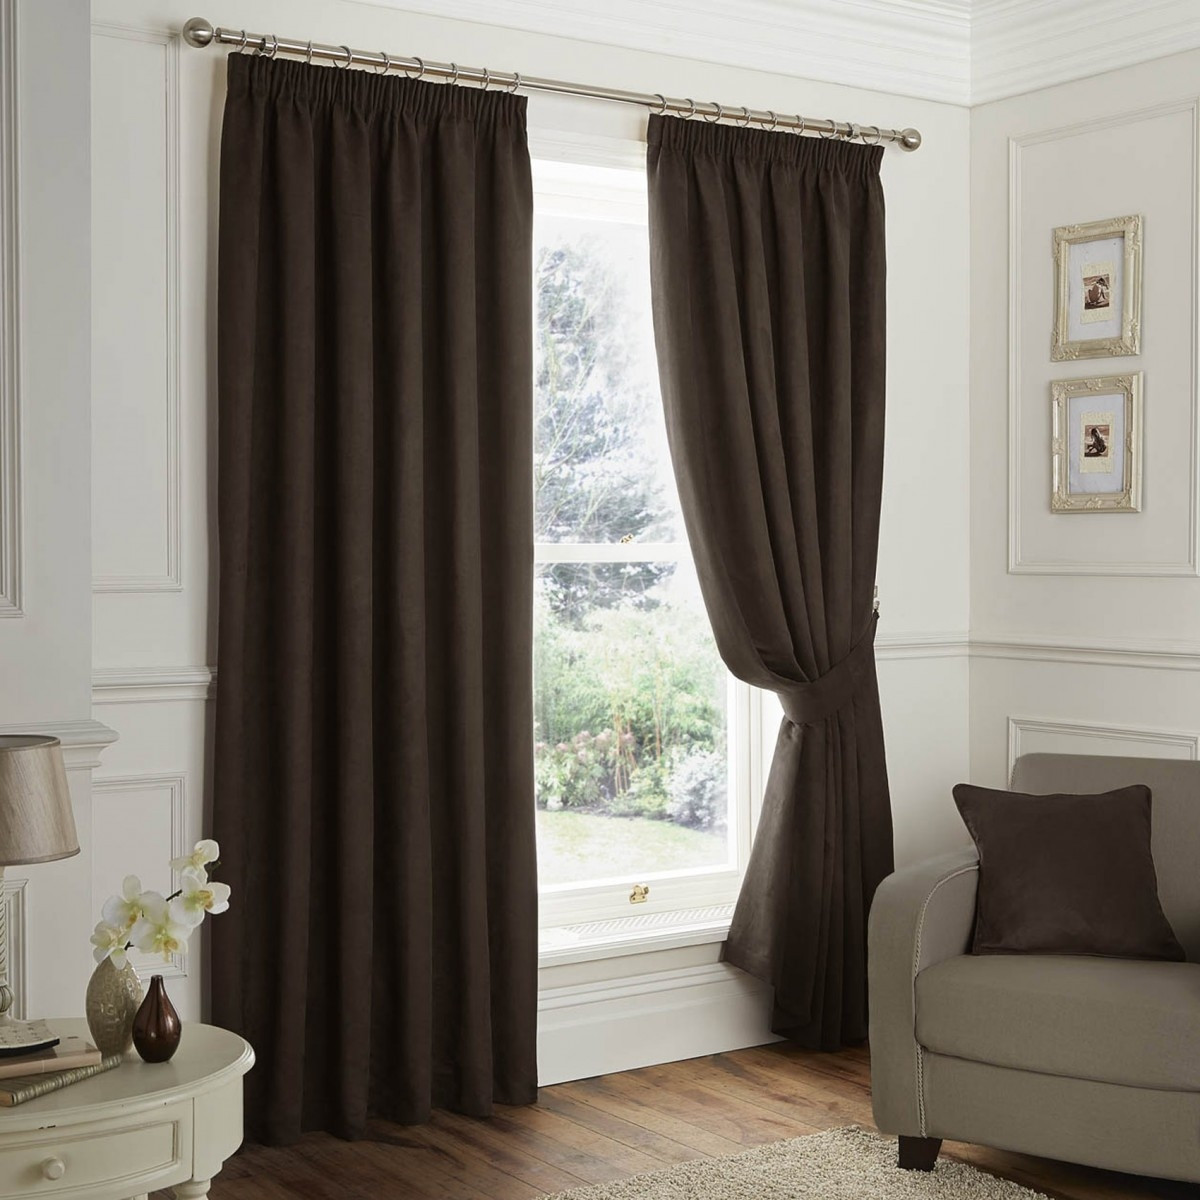 Faux Suede Blackout Chocolate Pencil Pleat Curtains Dove Mill Intended For Pencil Pleat Curtains (View 7 of 15)